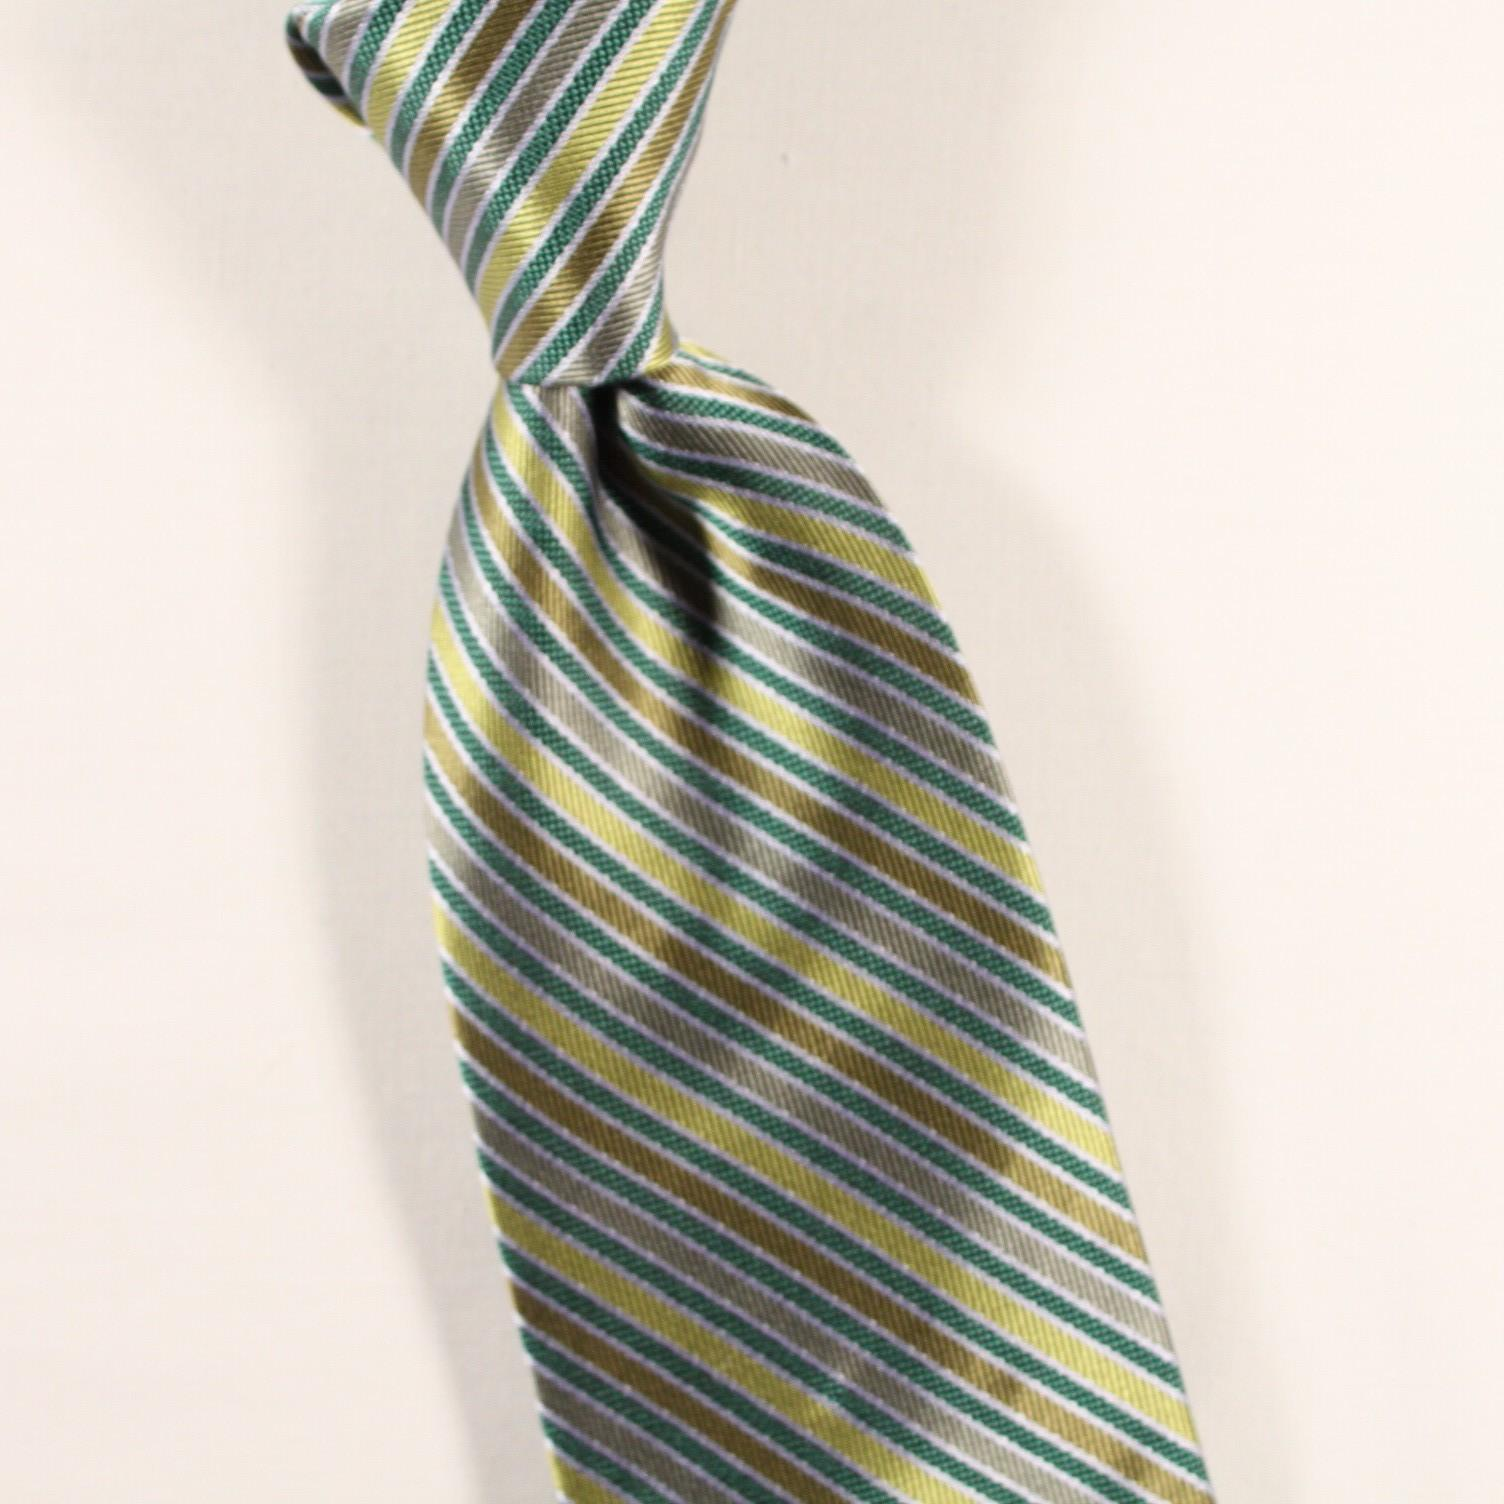 Teal and gold striped tie with